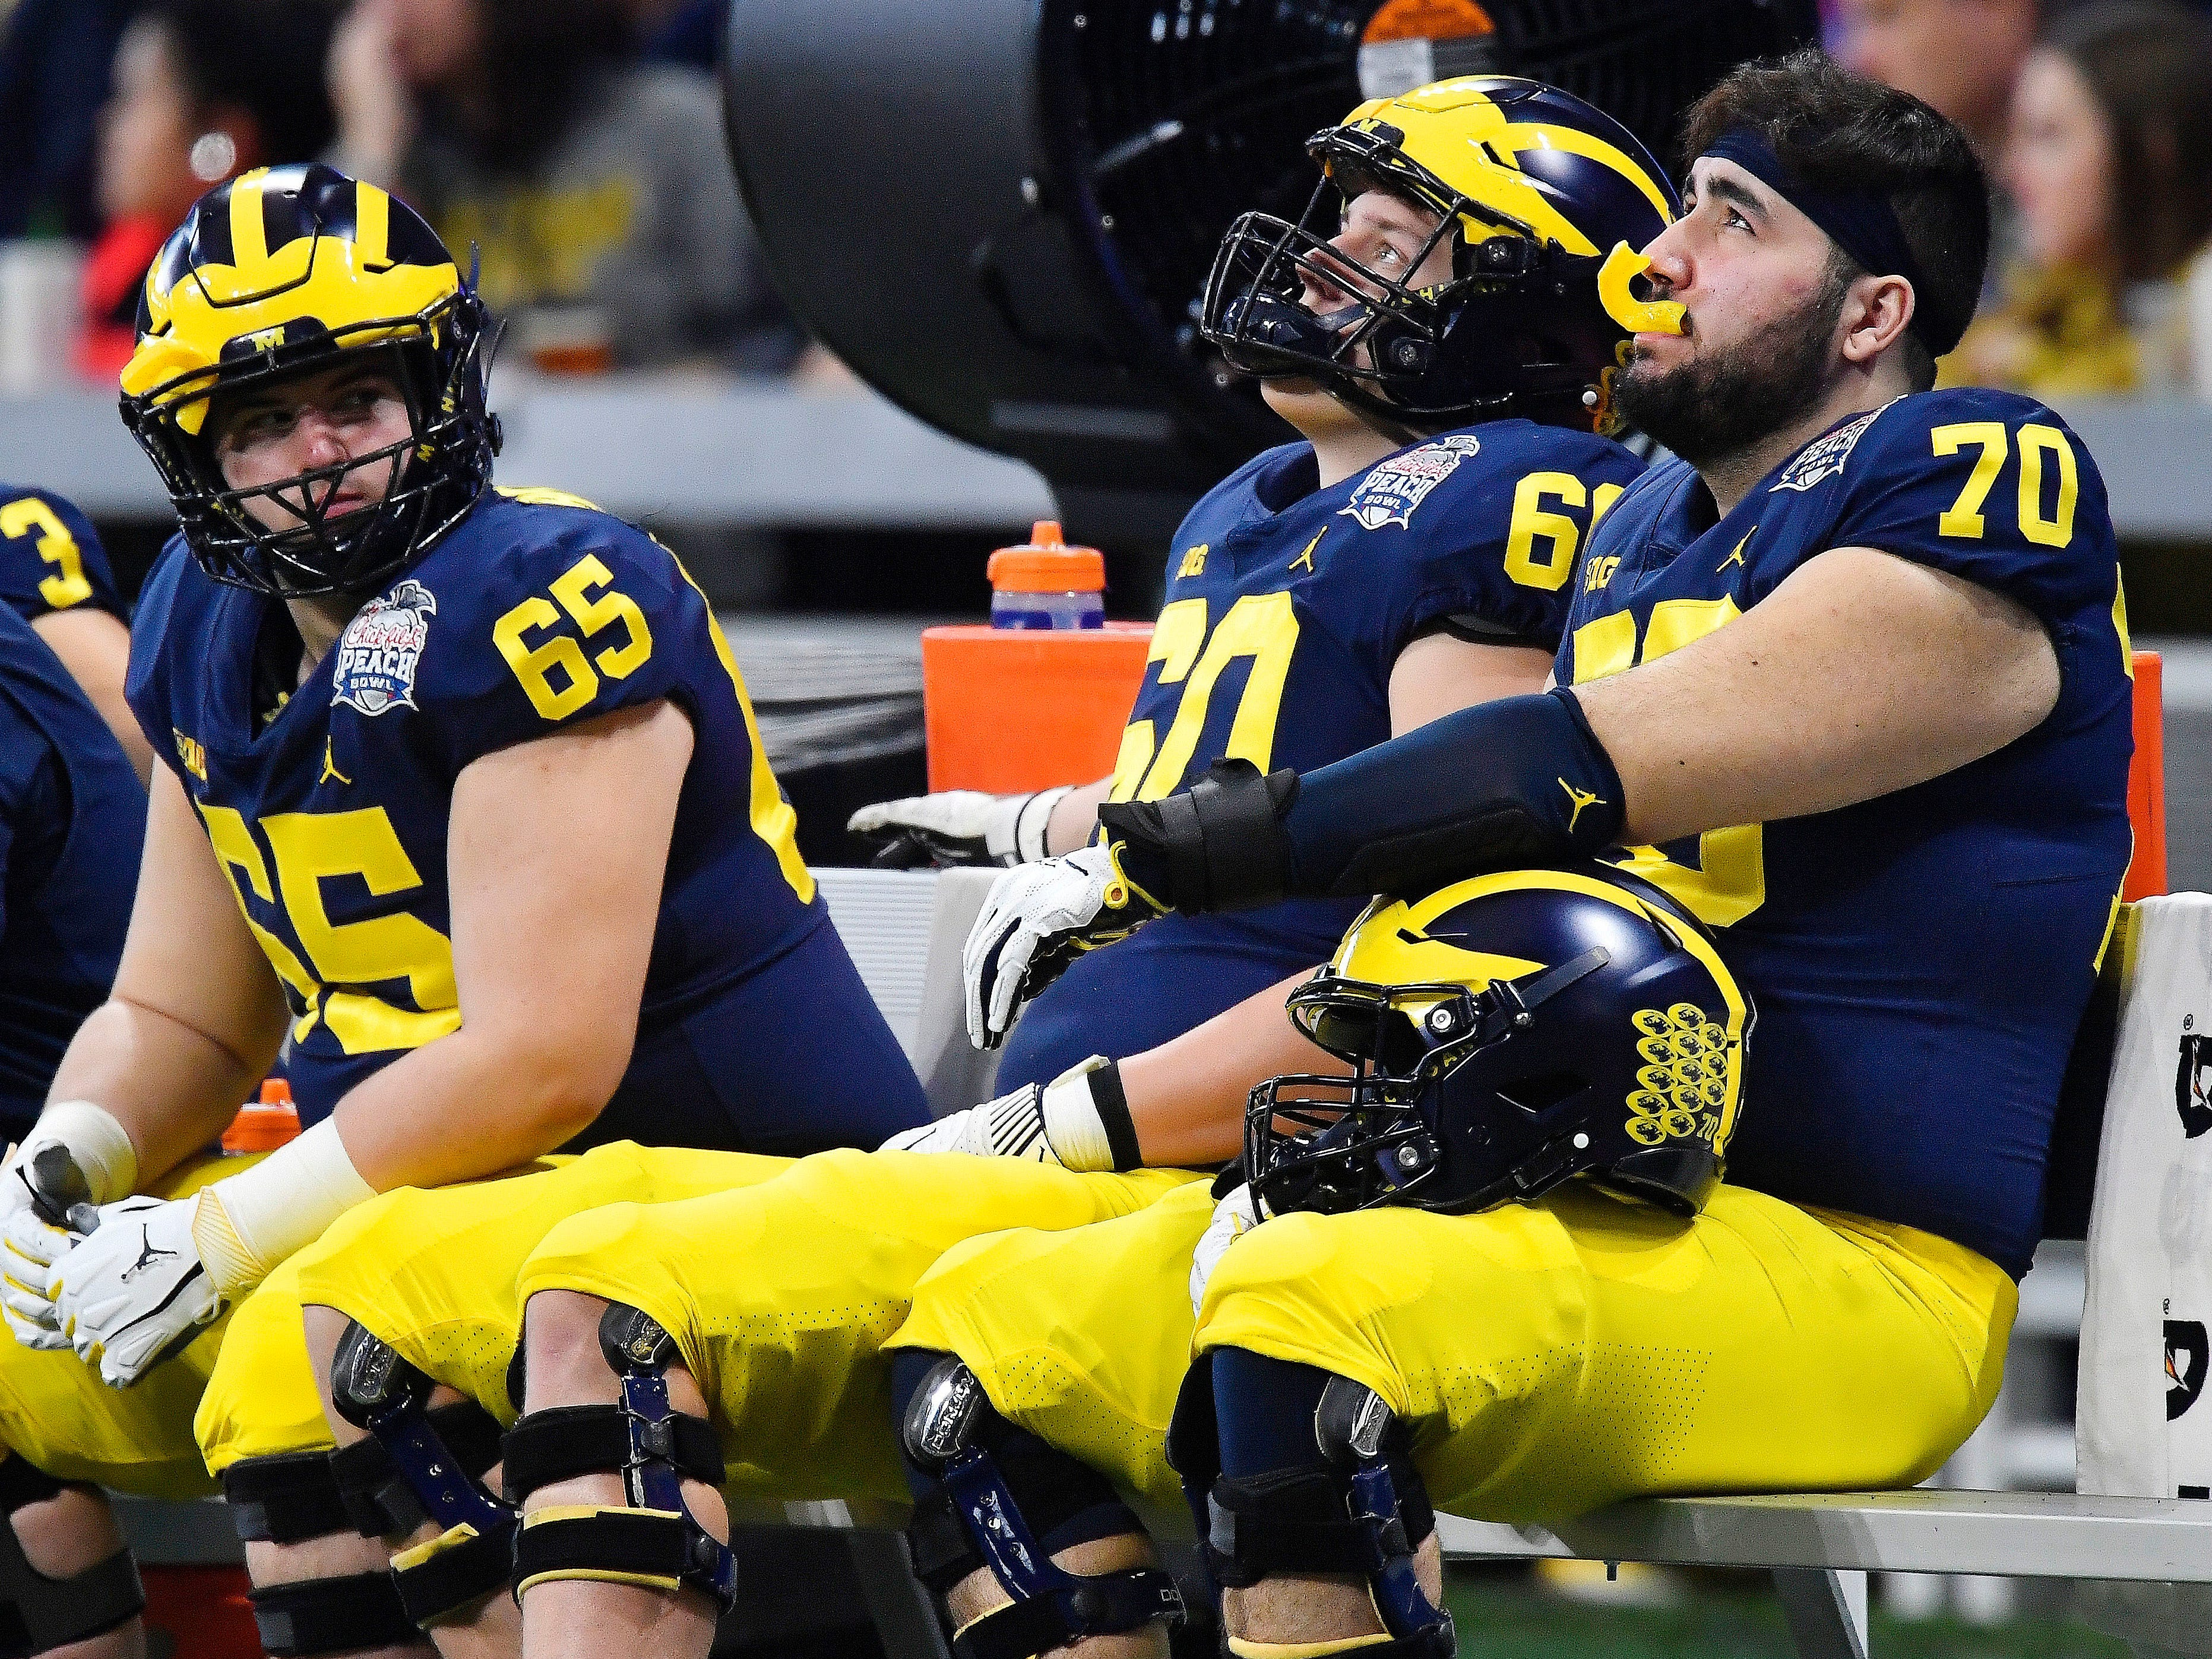 Michigan players sit on the bench in the closing seconds of the Peach Bowl NCAA college football game against Florida, Saturday, Dec. 29, 2018, in Atlanta. Florida won 41-15.